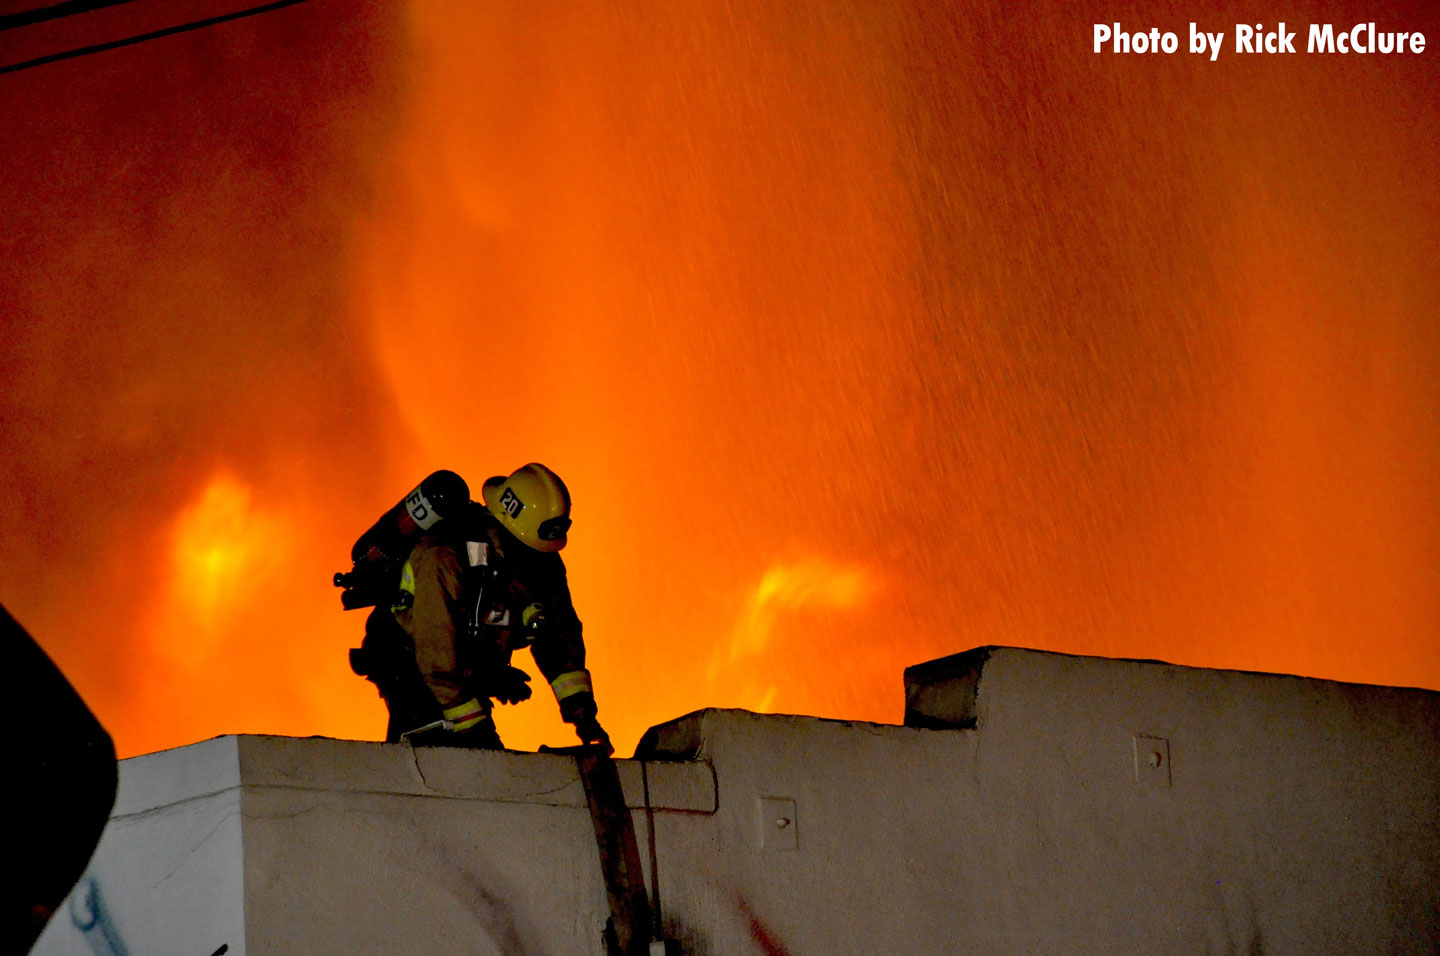 A firefighter on the roof of a structure with flames raging behind him.